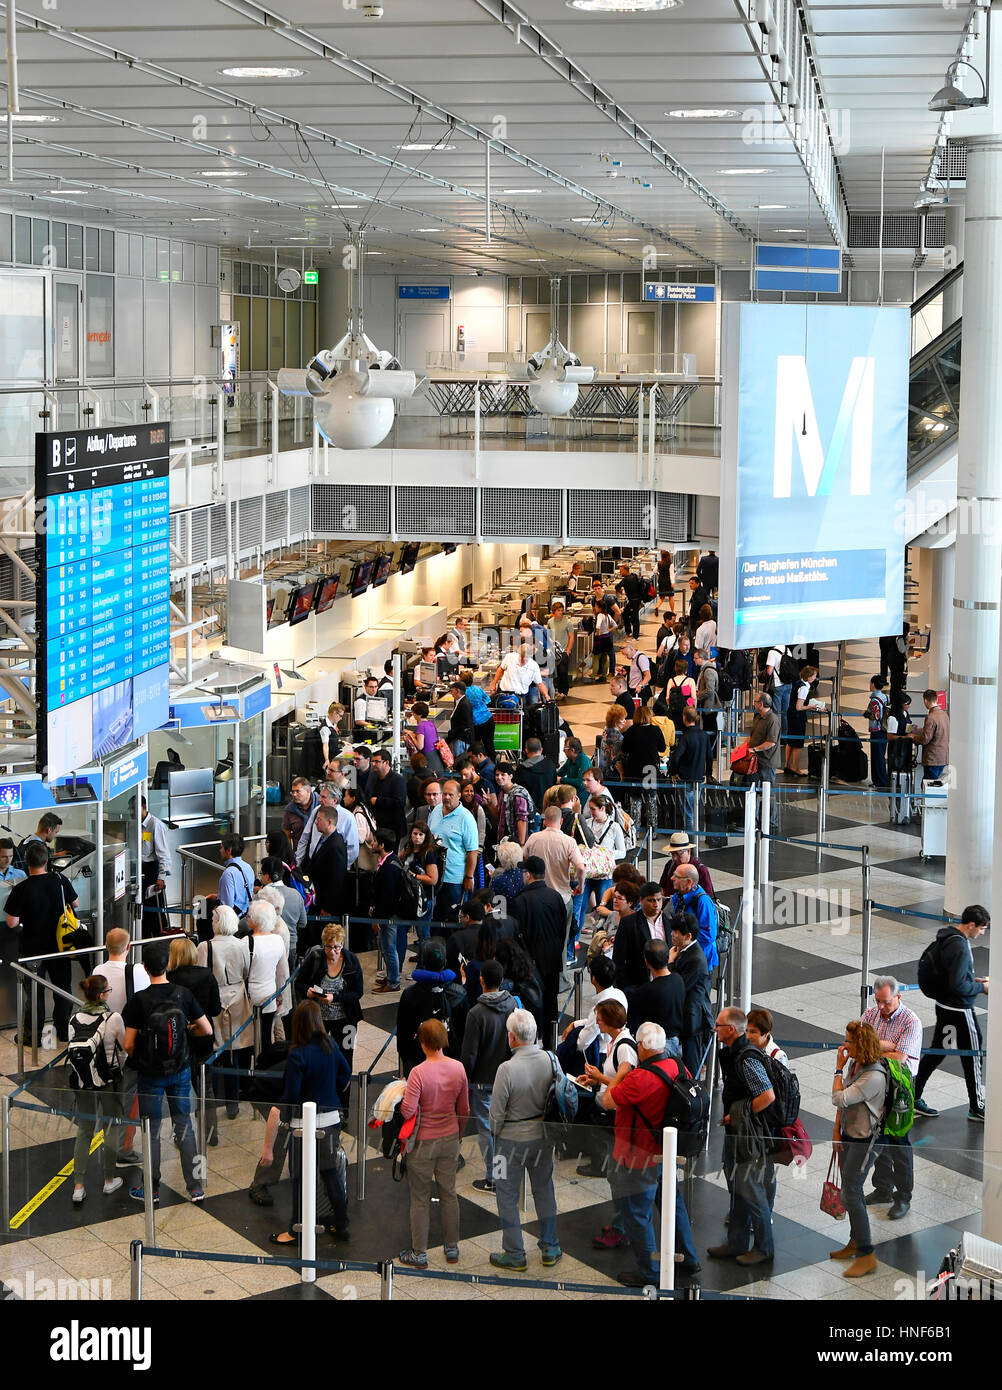 Terminal 1, Modul B, departure, Security Controls, Check Point, People, Passenger, Pace, Pax, MUC, EDDM, Airport - Stock Image